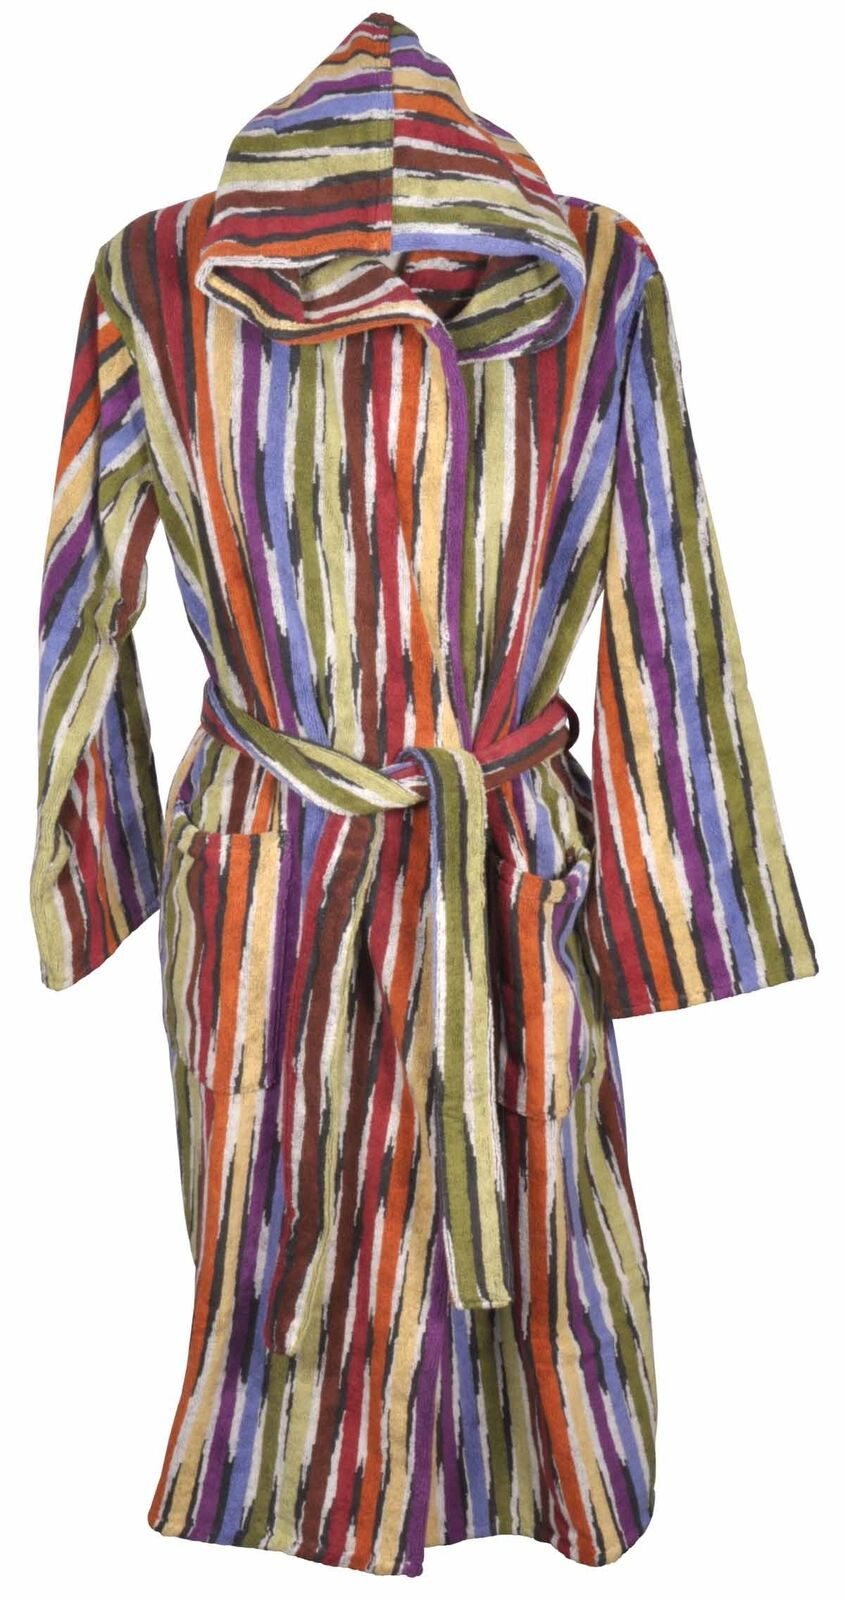 Missoni Home Jeff size L Bademantel bathrobe accappatoio peigblack albornoz - Ora